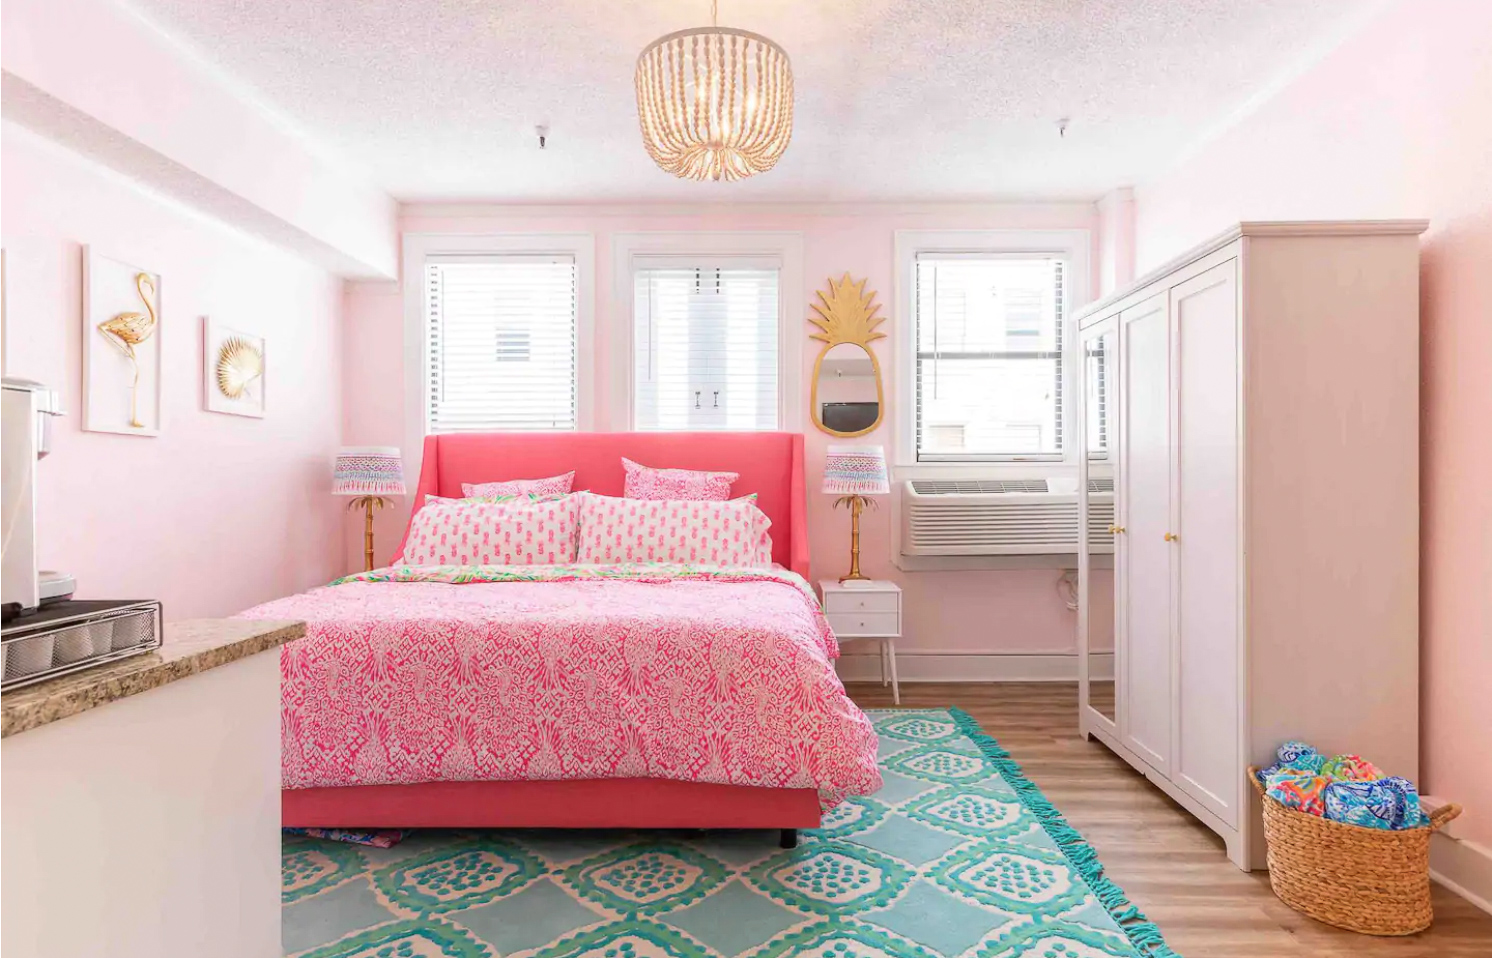 Top Pink Airbnb Places To Stay In The Usa Reesa Rei